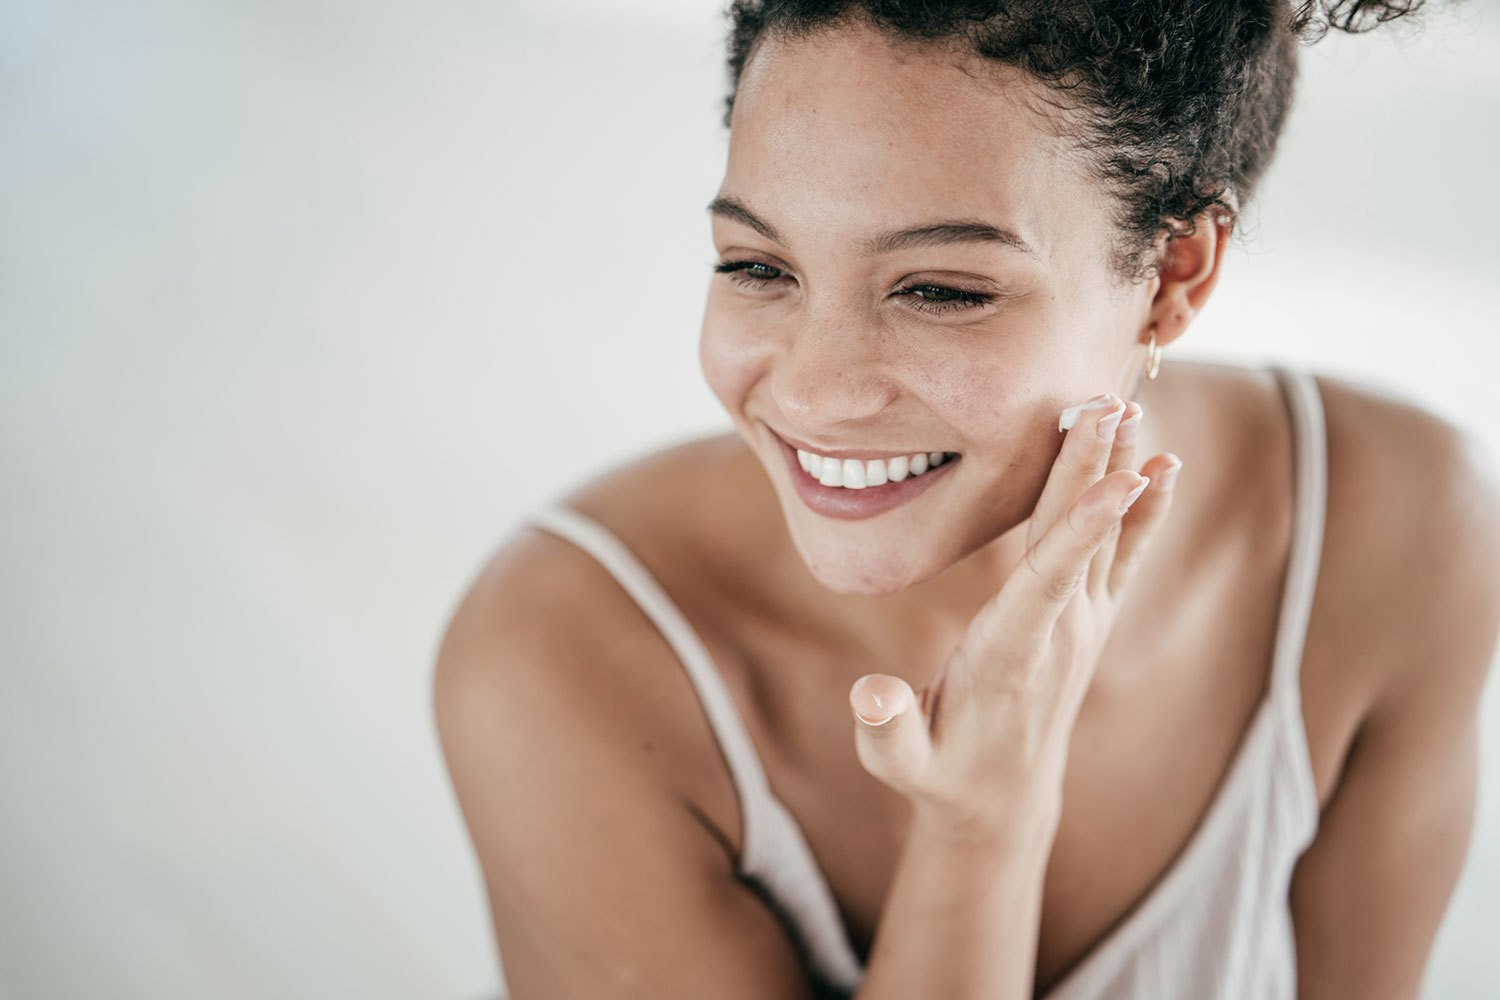 Woman Enjoys Results of Natural Skincare from Dr. Duplechain in Lafayette